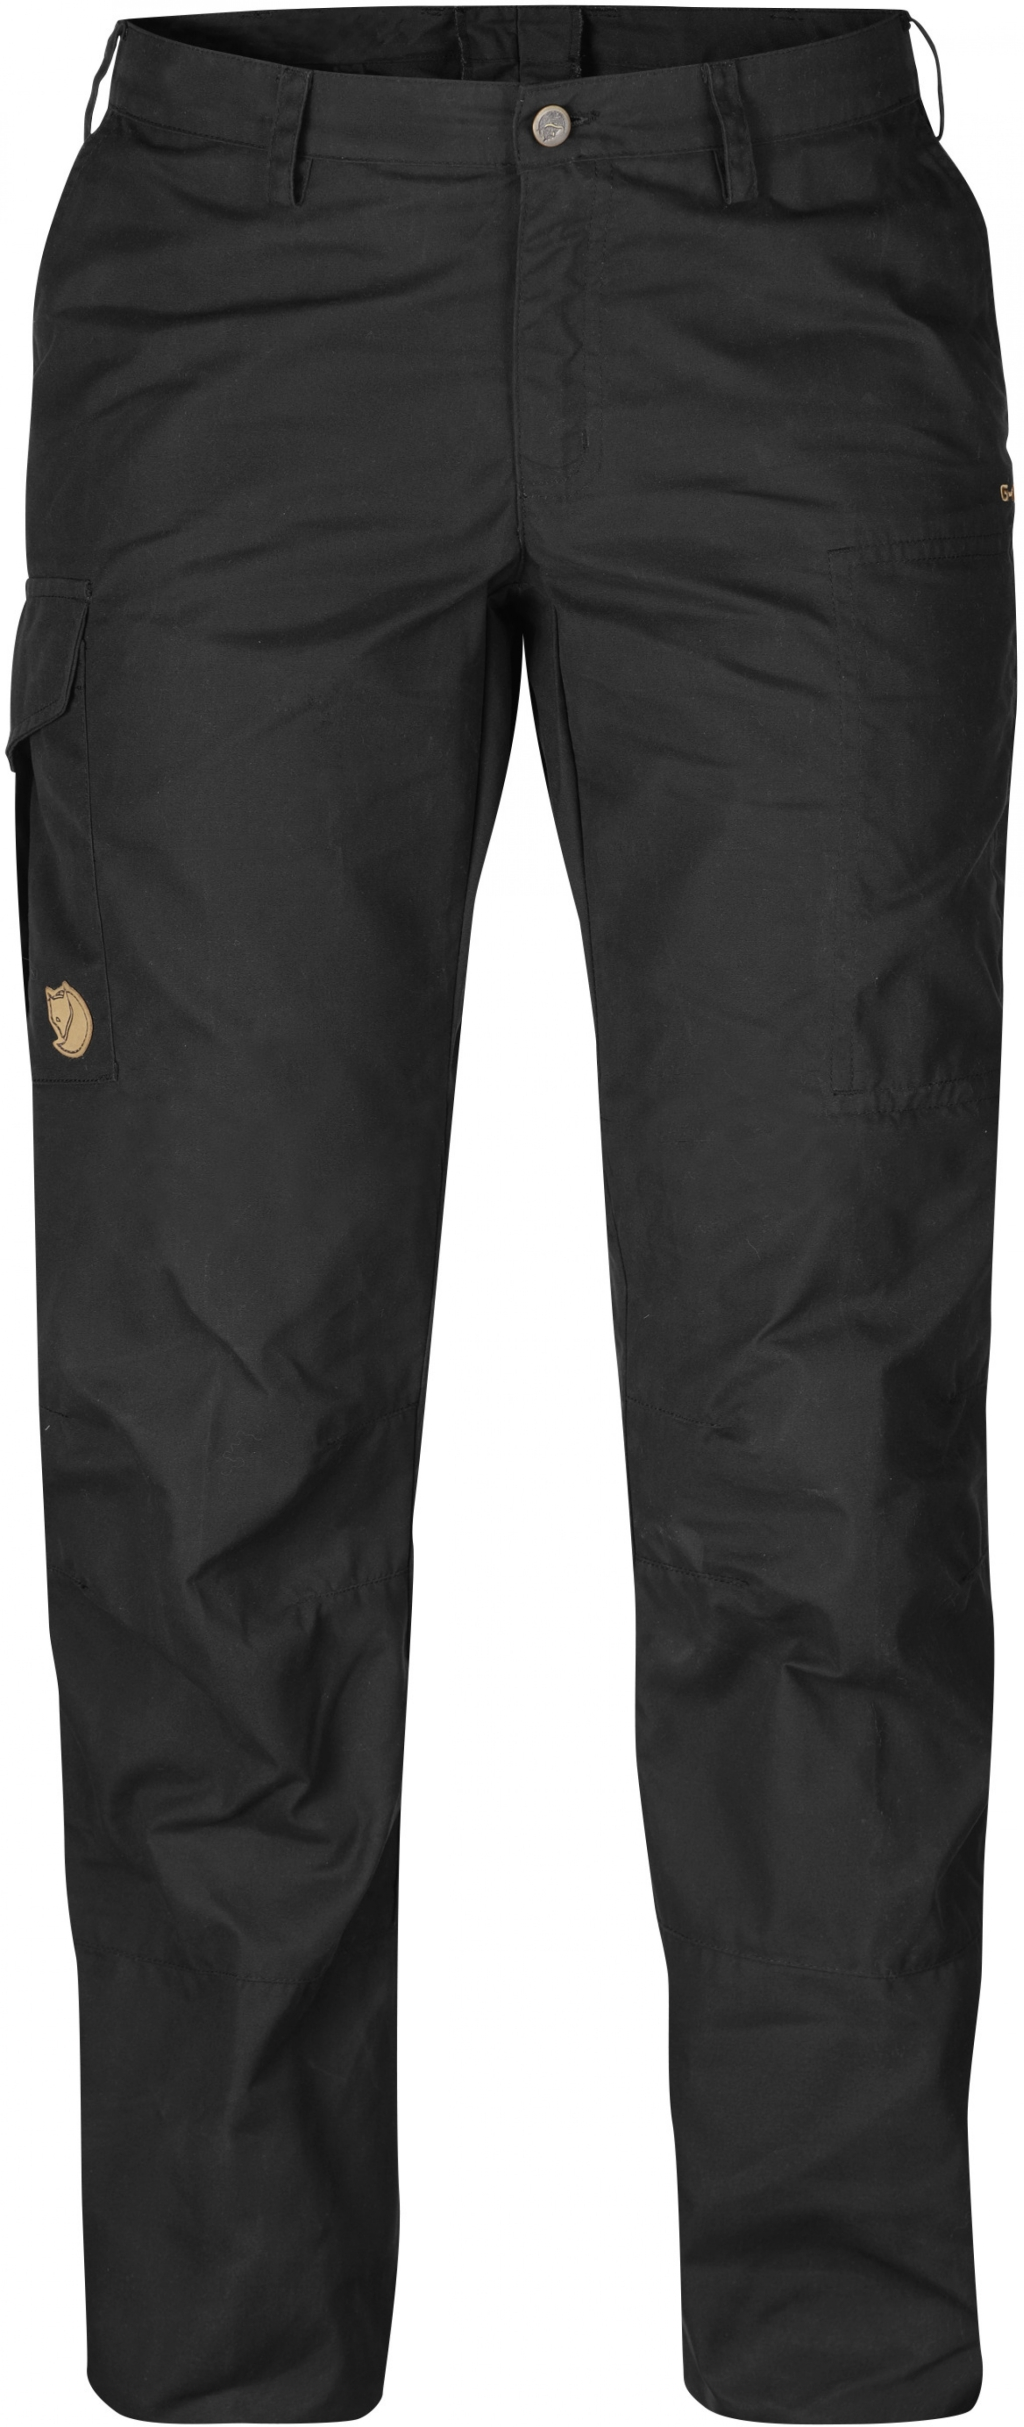 FjallRaven Karla Pro Trousers Curved Black-30